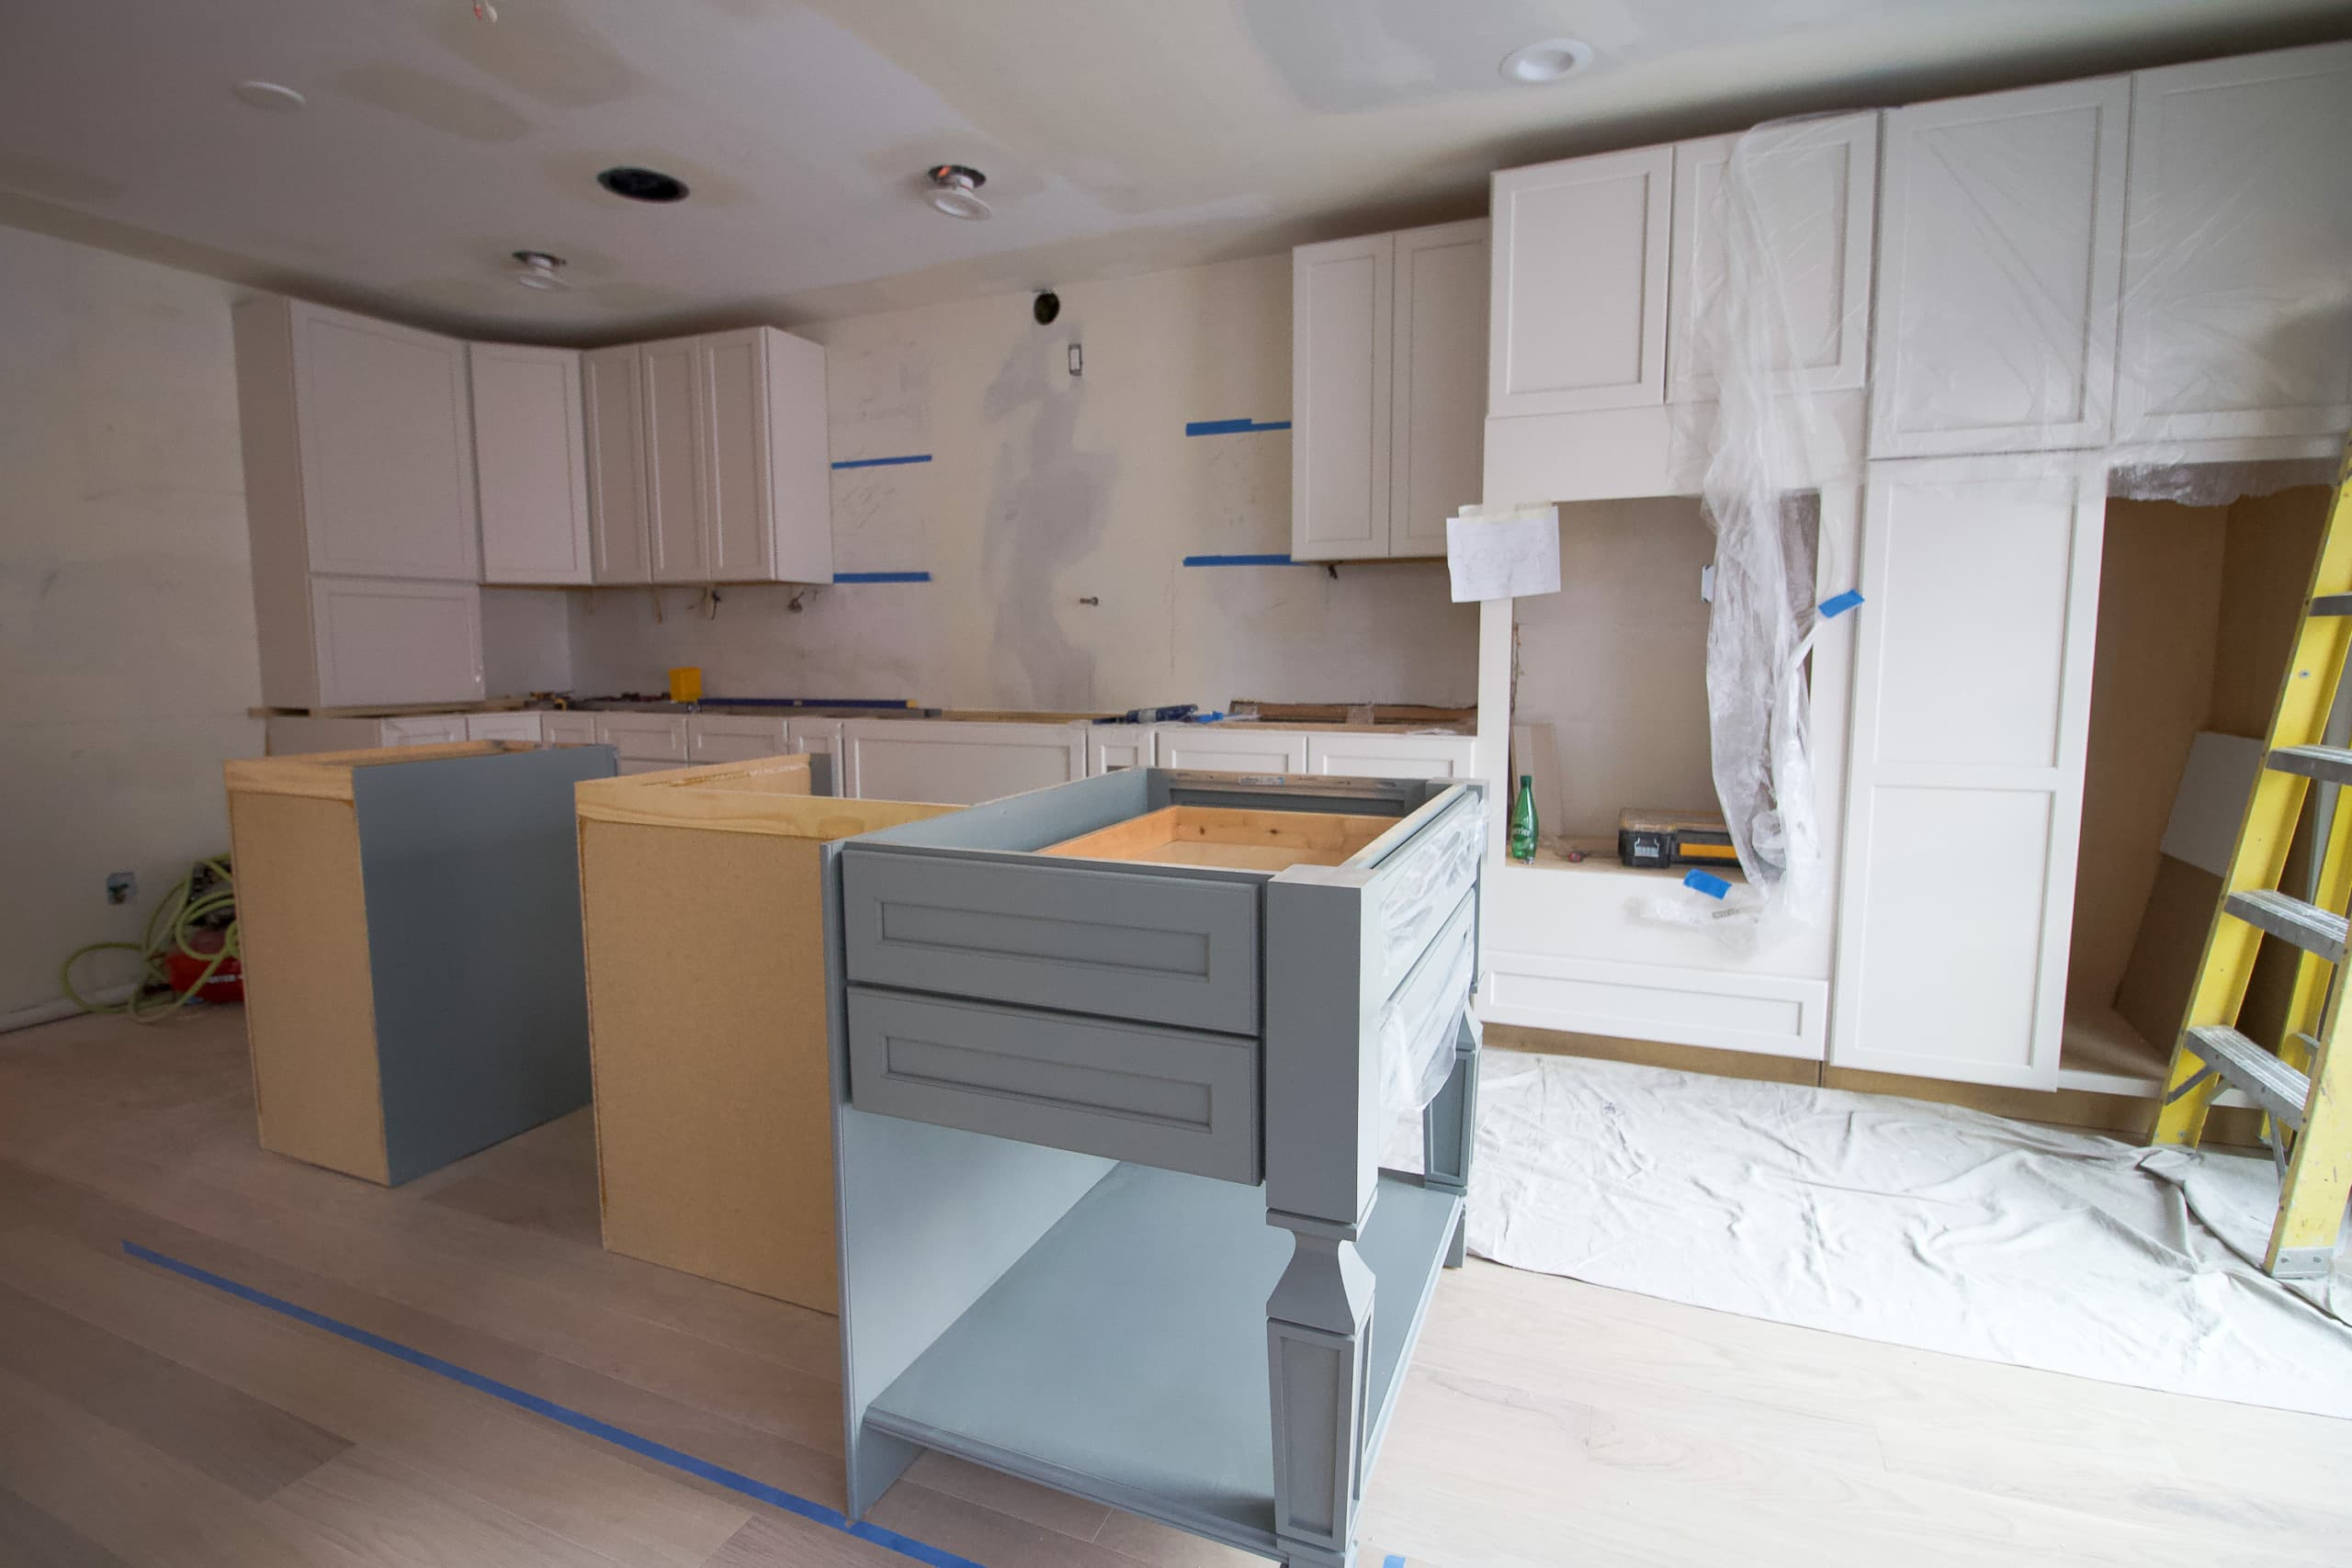 Our kitchen cabinets are in